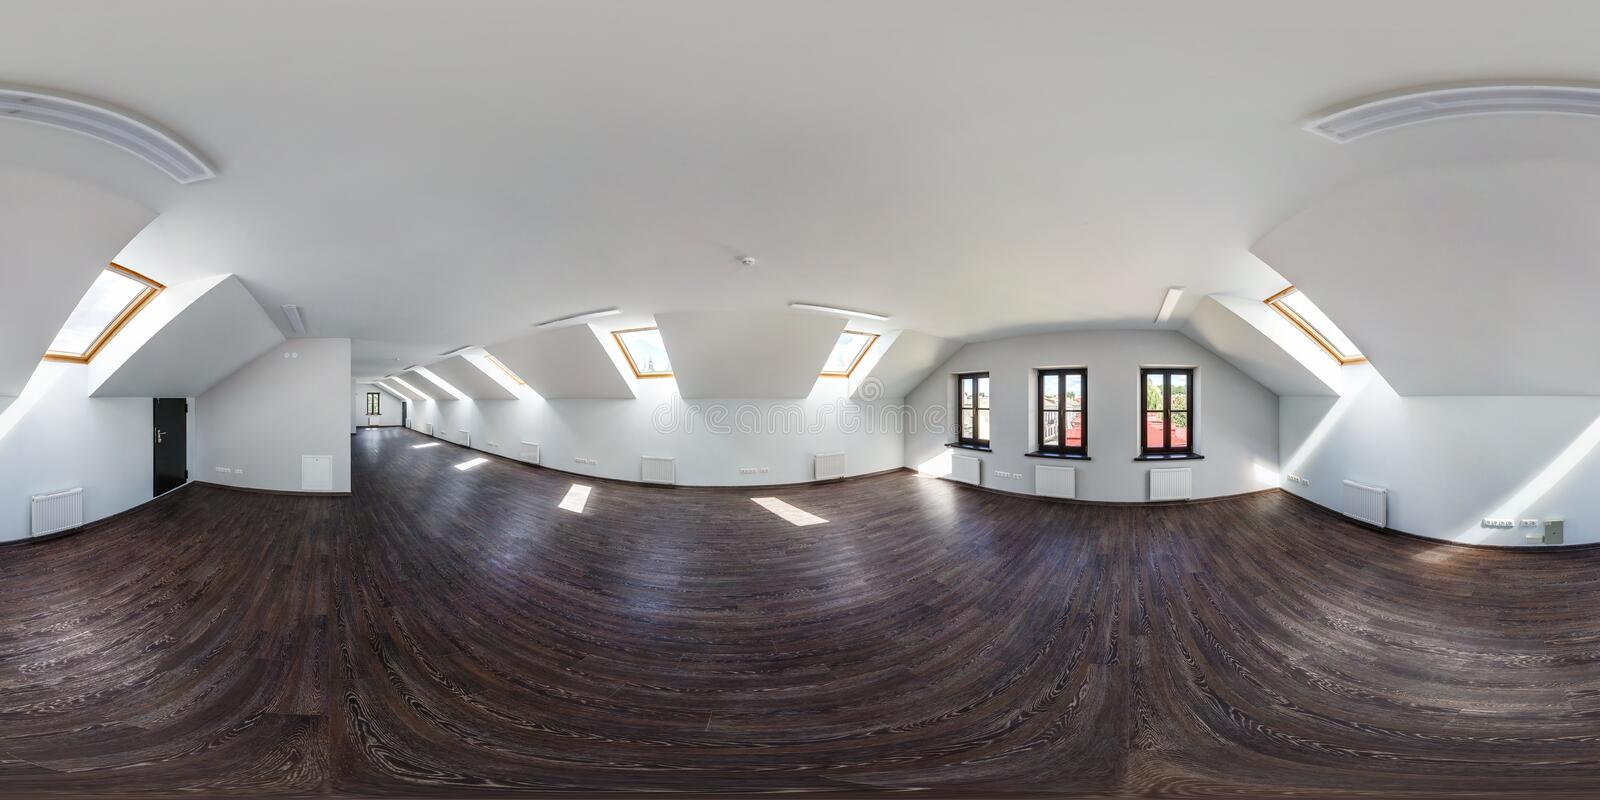 GRODNO, BELARUS - AUGUST 15, 2017: Full spherical 360 by 180 degrees seamless panorama in equirectangular equidistant projection,. Panorama in interior of empty royalty free stock images